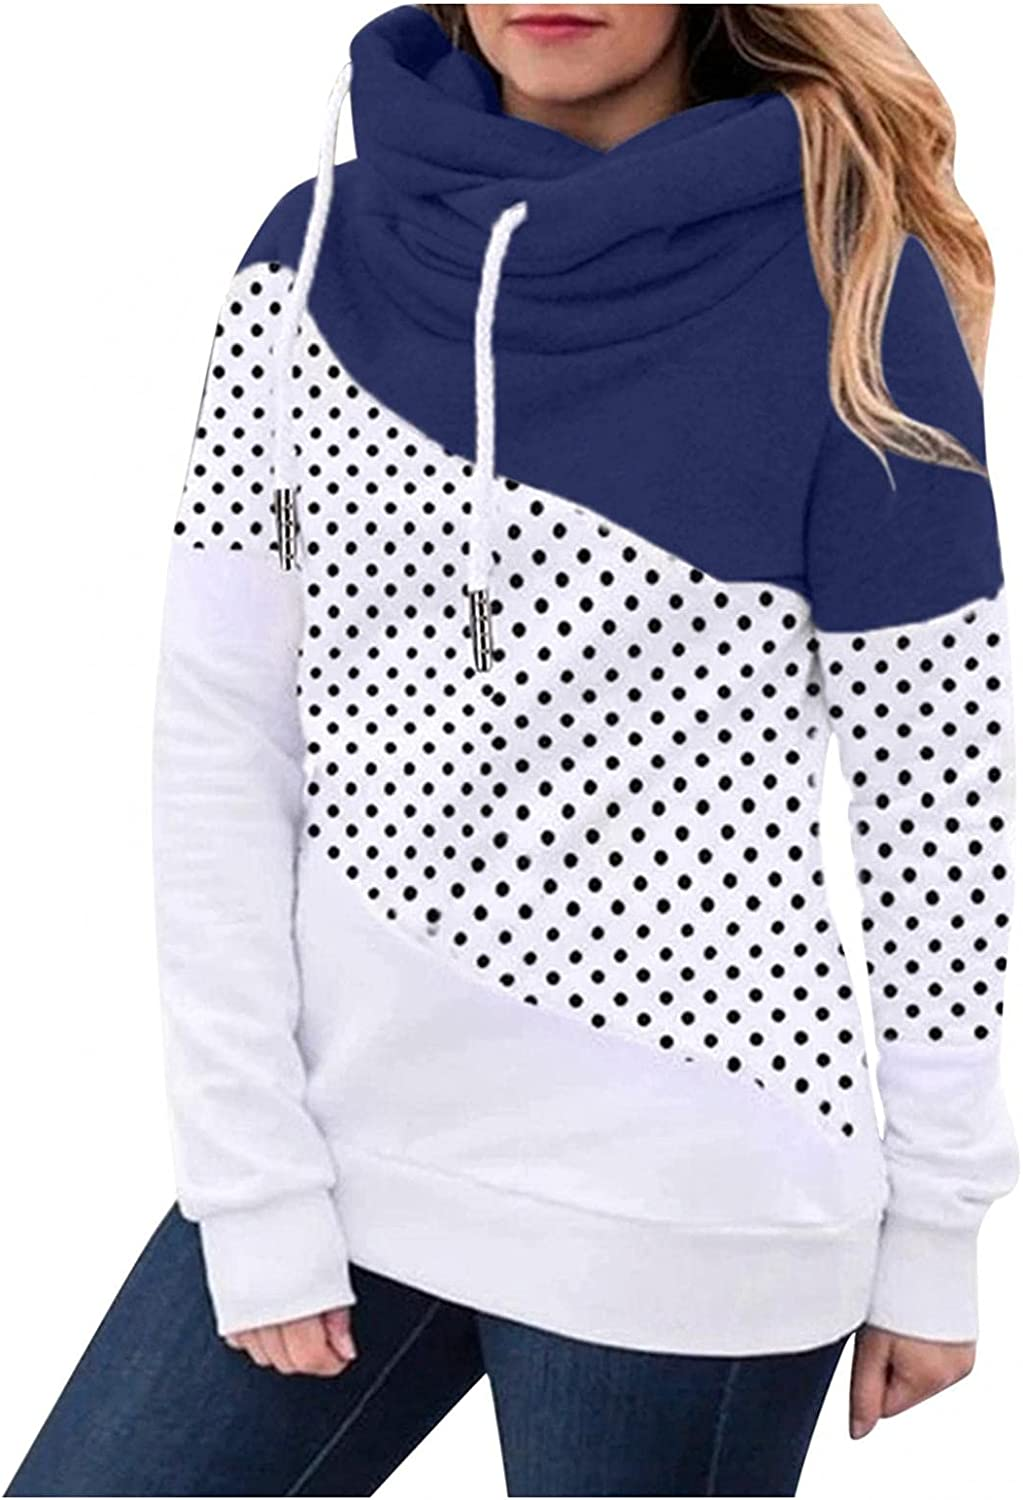 felwors Hoodies for Women, Womens Loose Pullover Long Sleeve Fall Hoodies Color Block Tunics Casual Comfy Sweatshirts